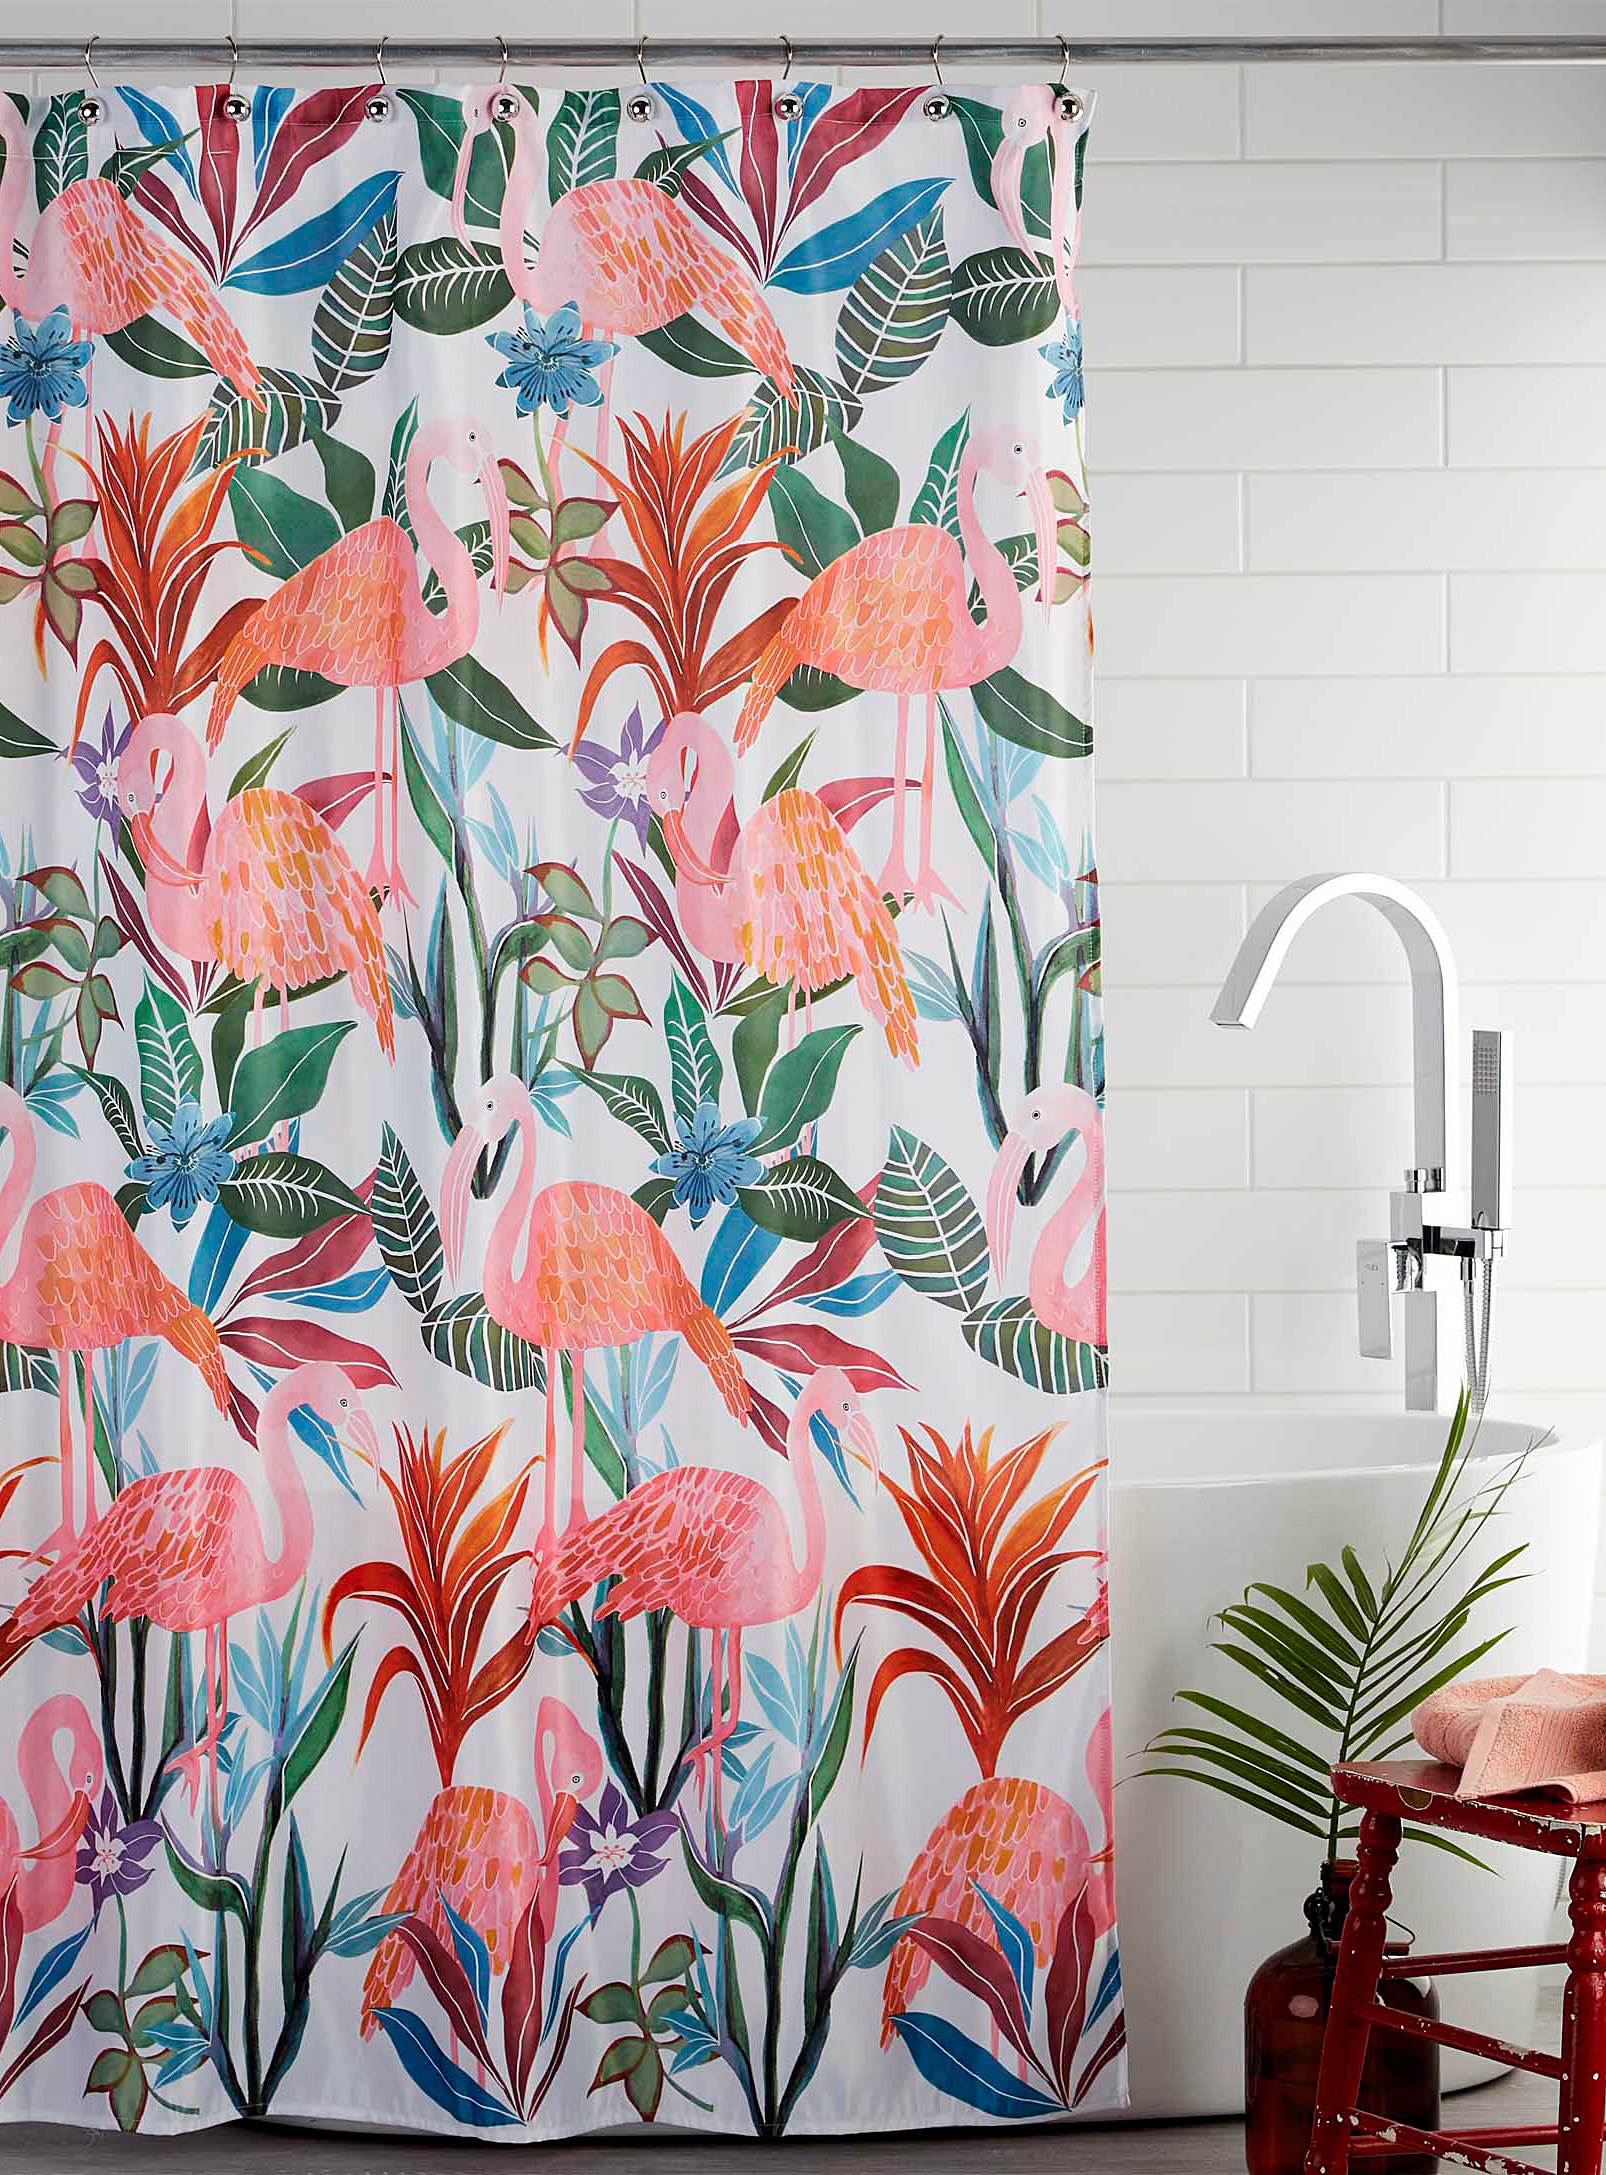 A shower curtain with flamingos printed on it